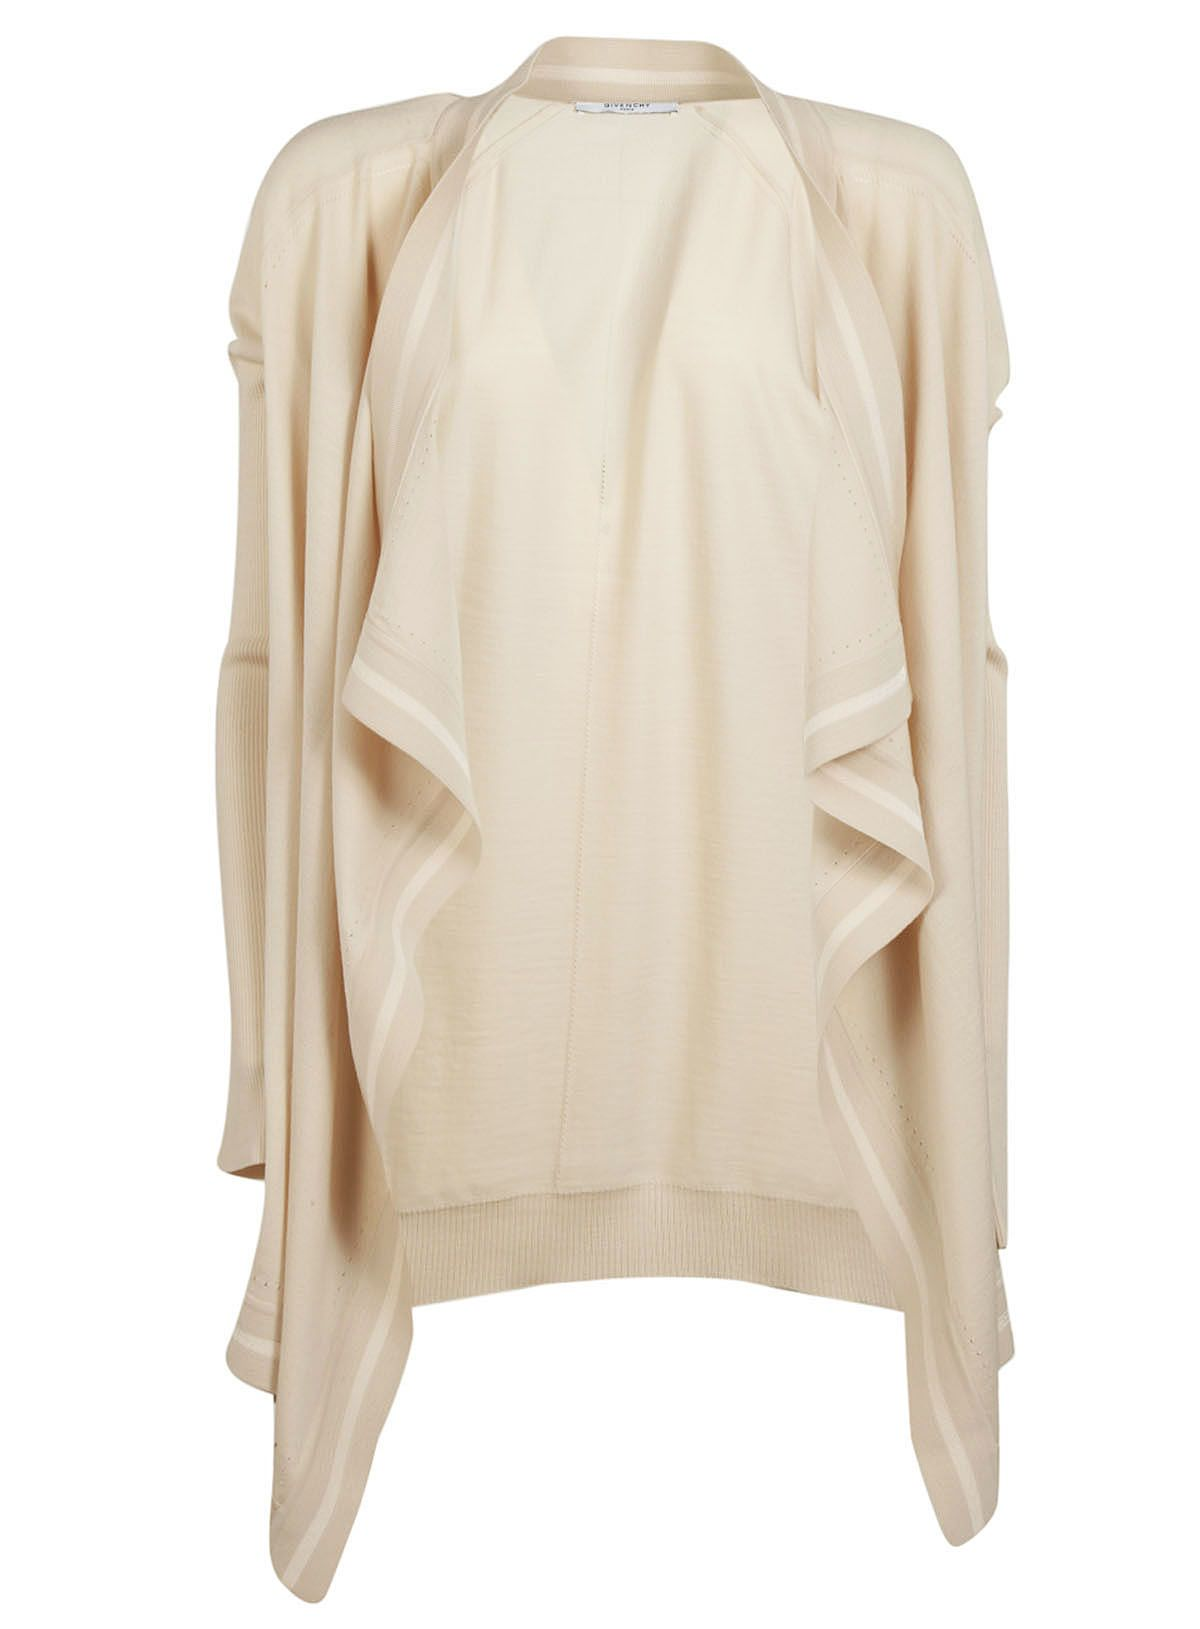 Givenchy Givenchy Waterfall Front Cardigan